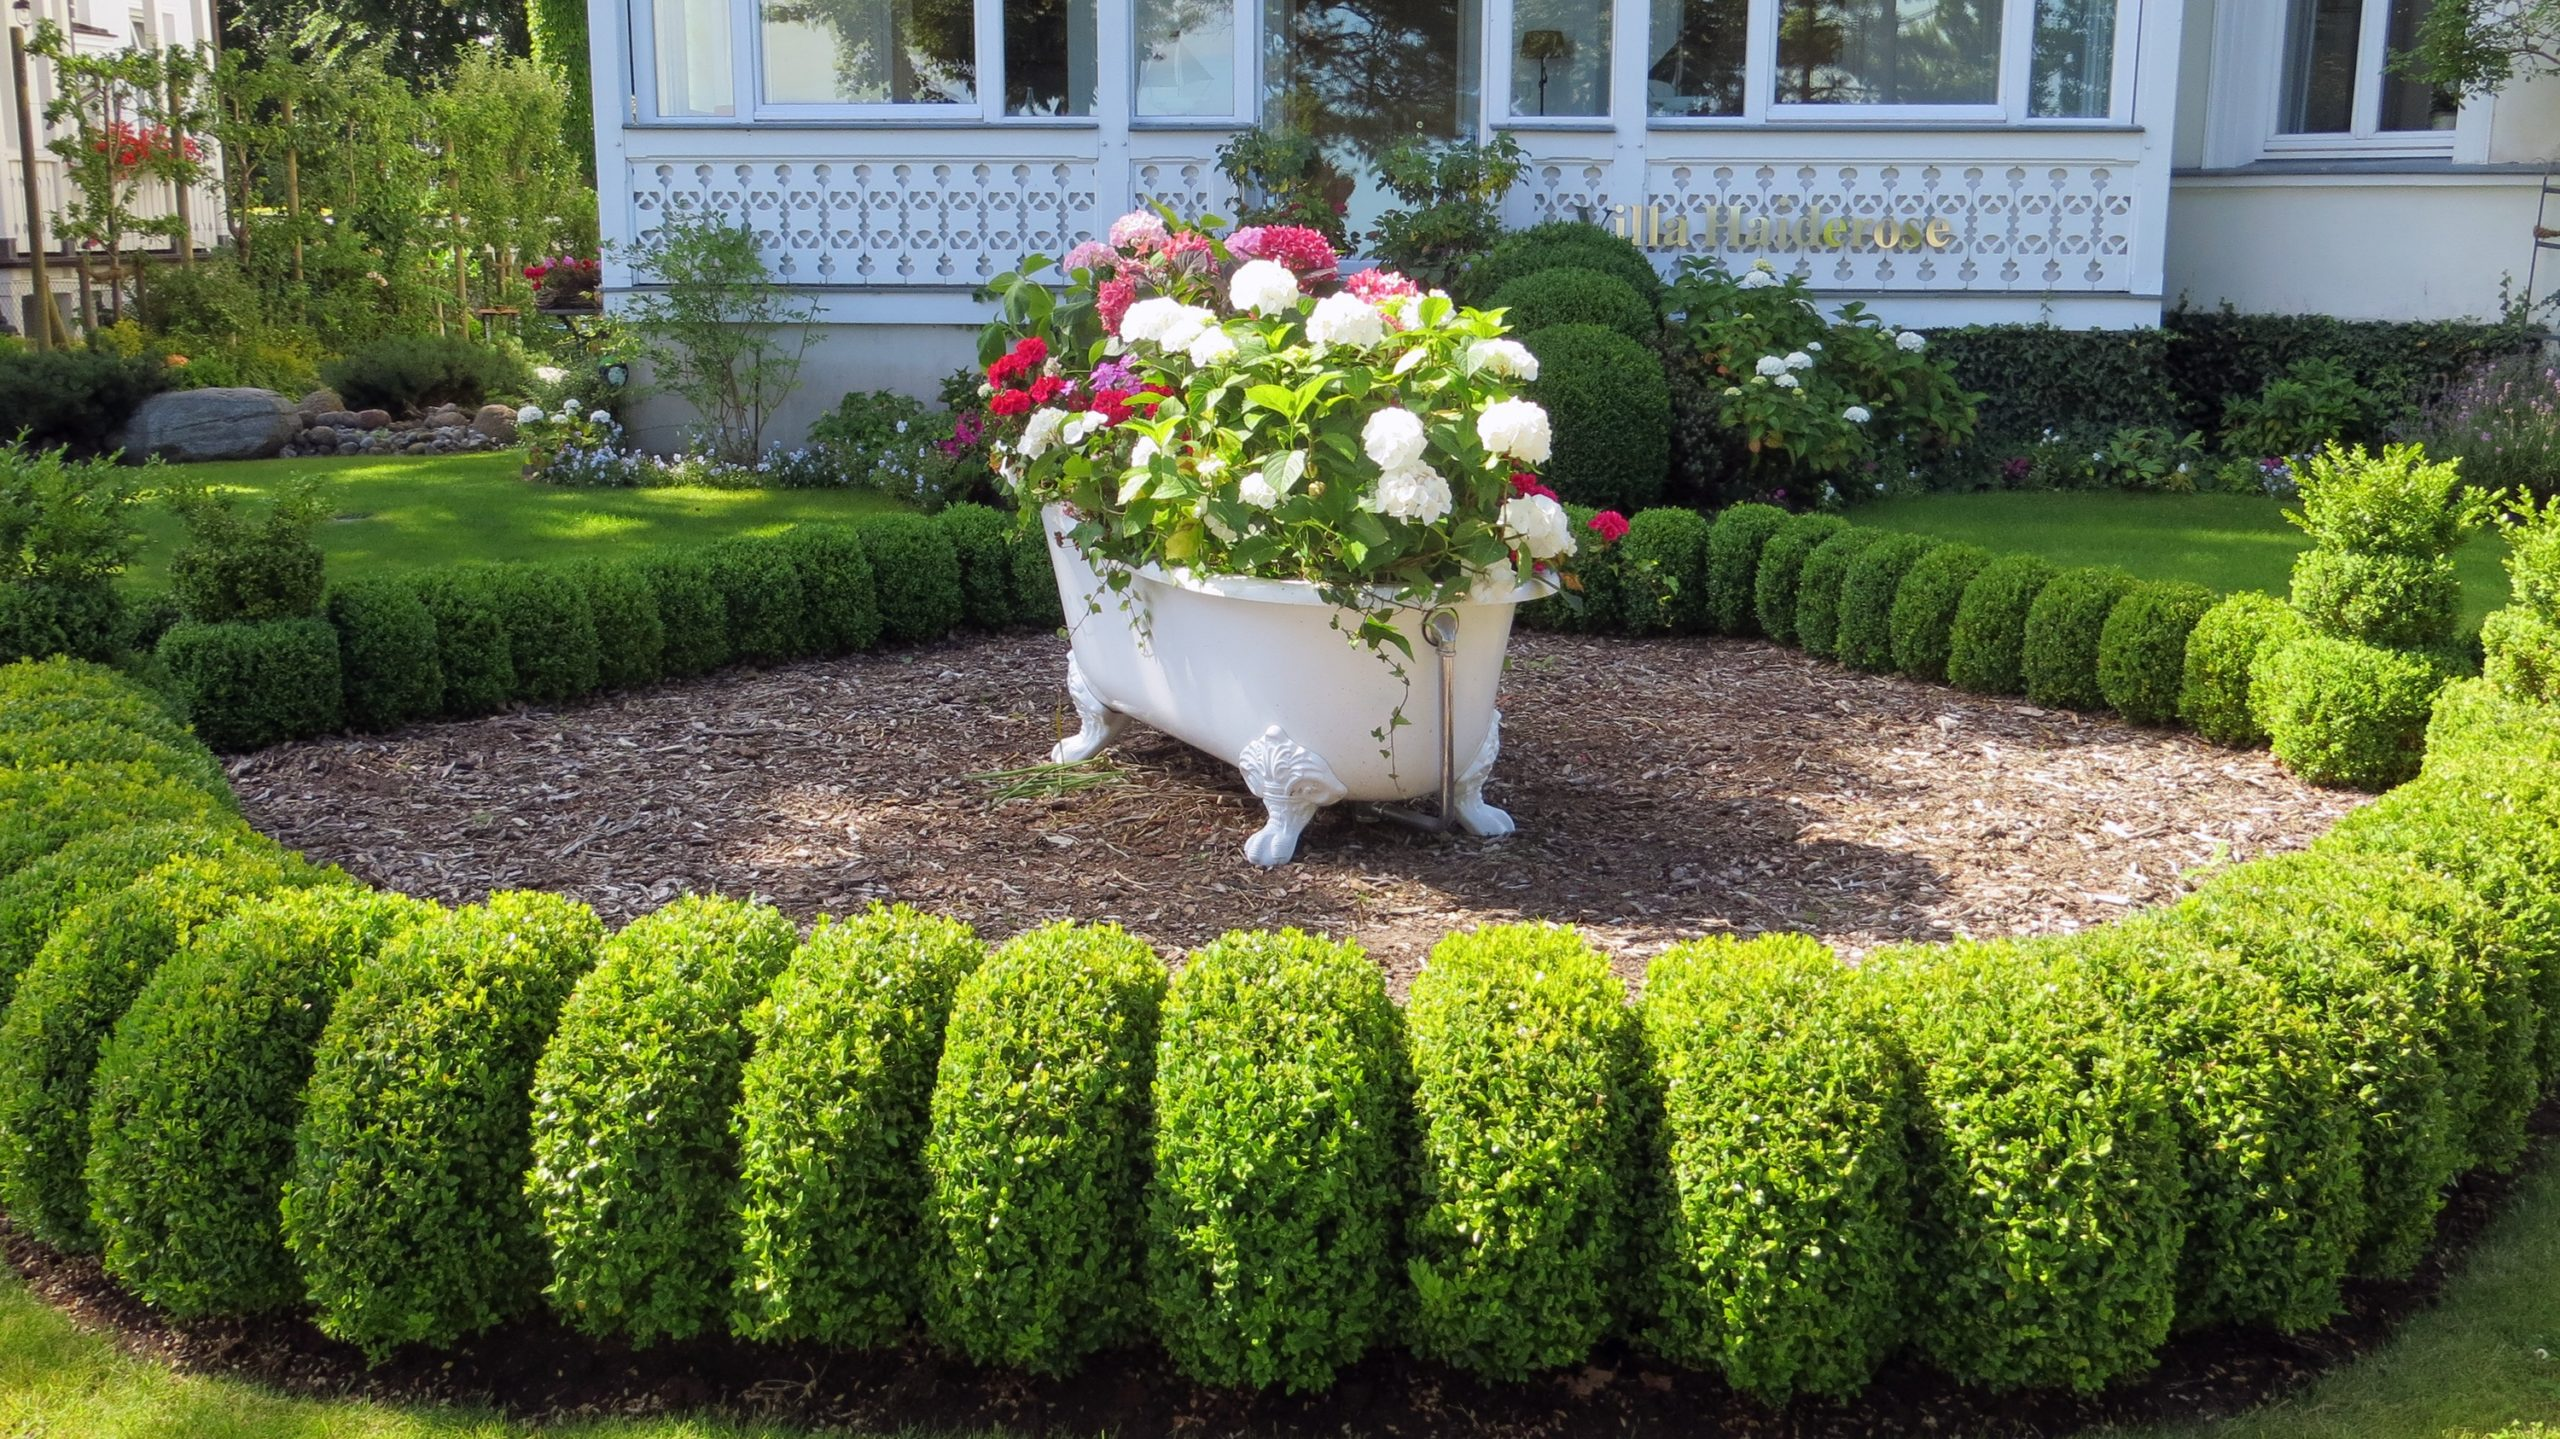 Flowers on a tub surrounded by well-maintened hedges